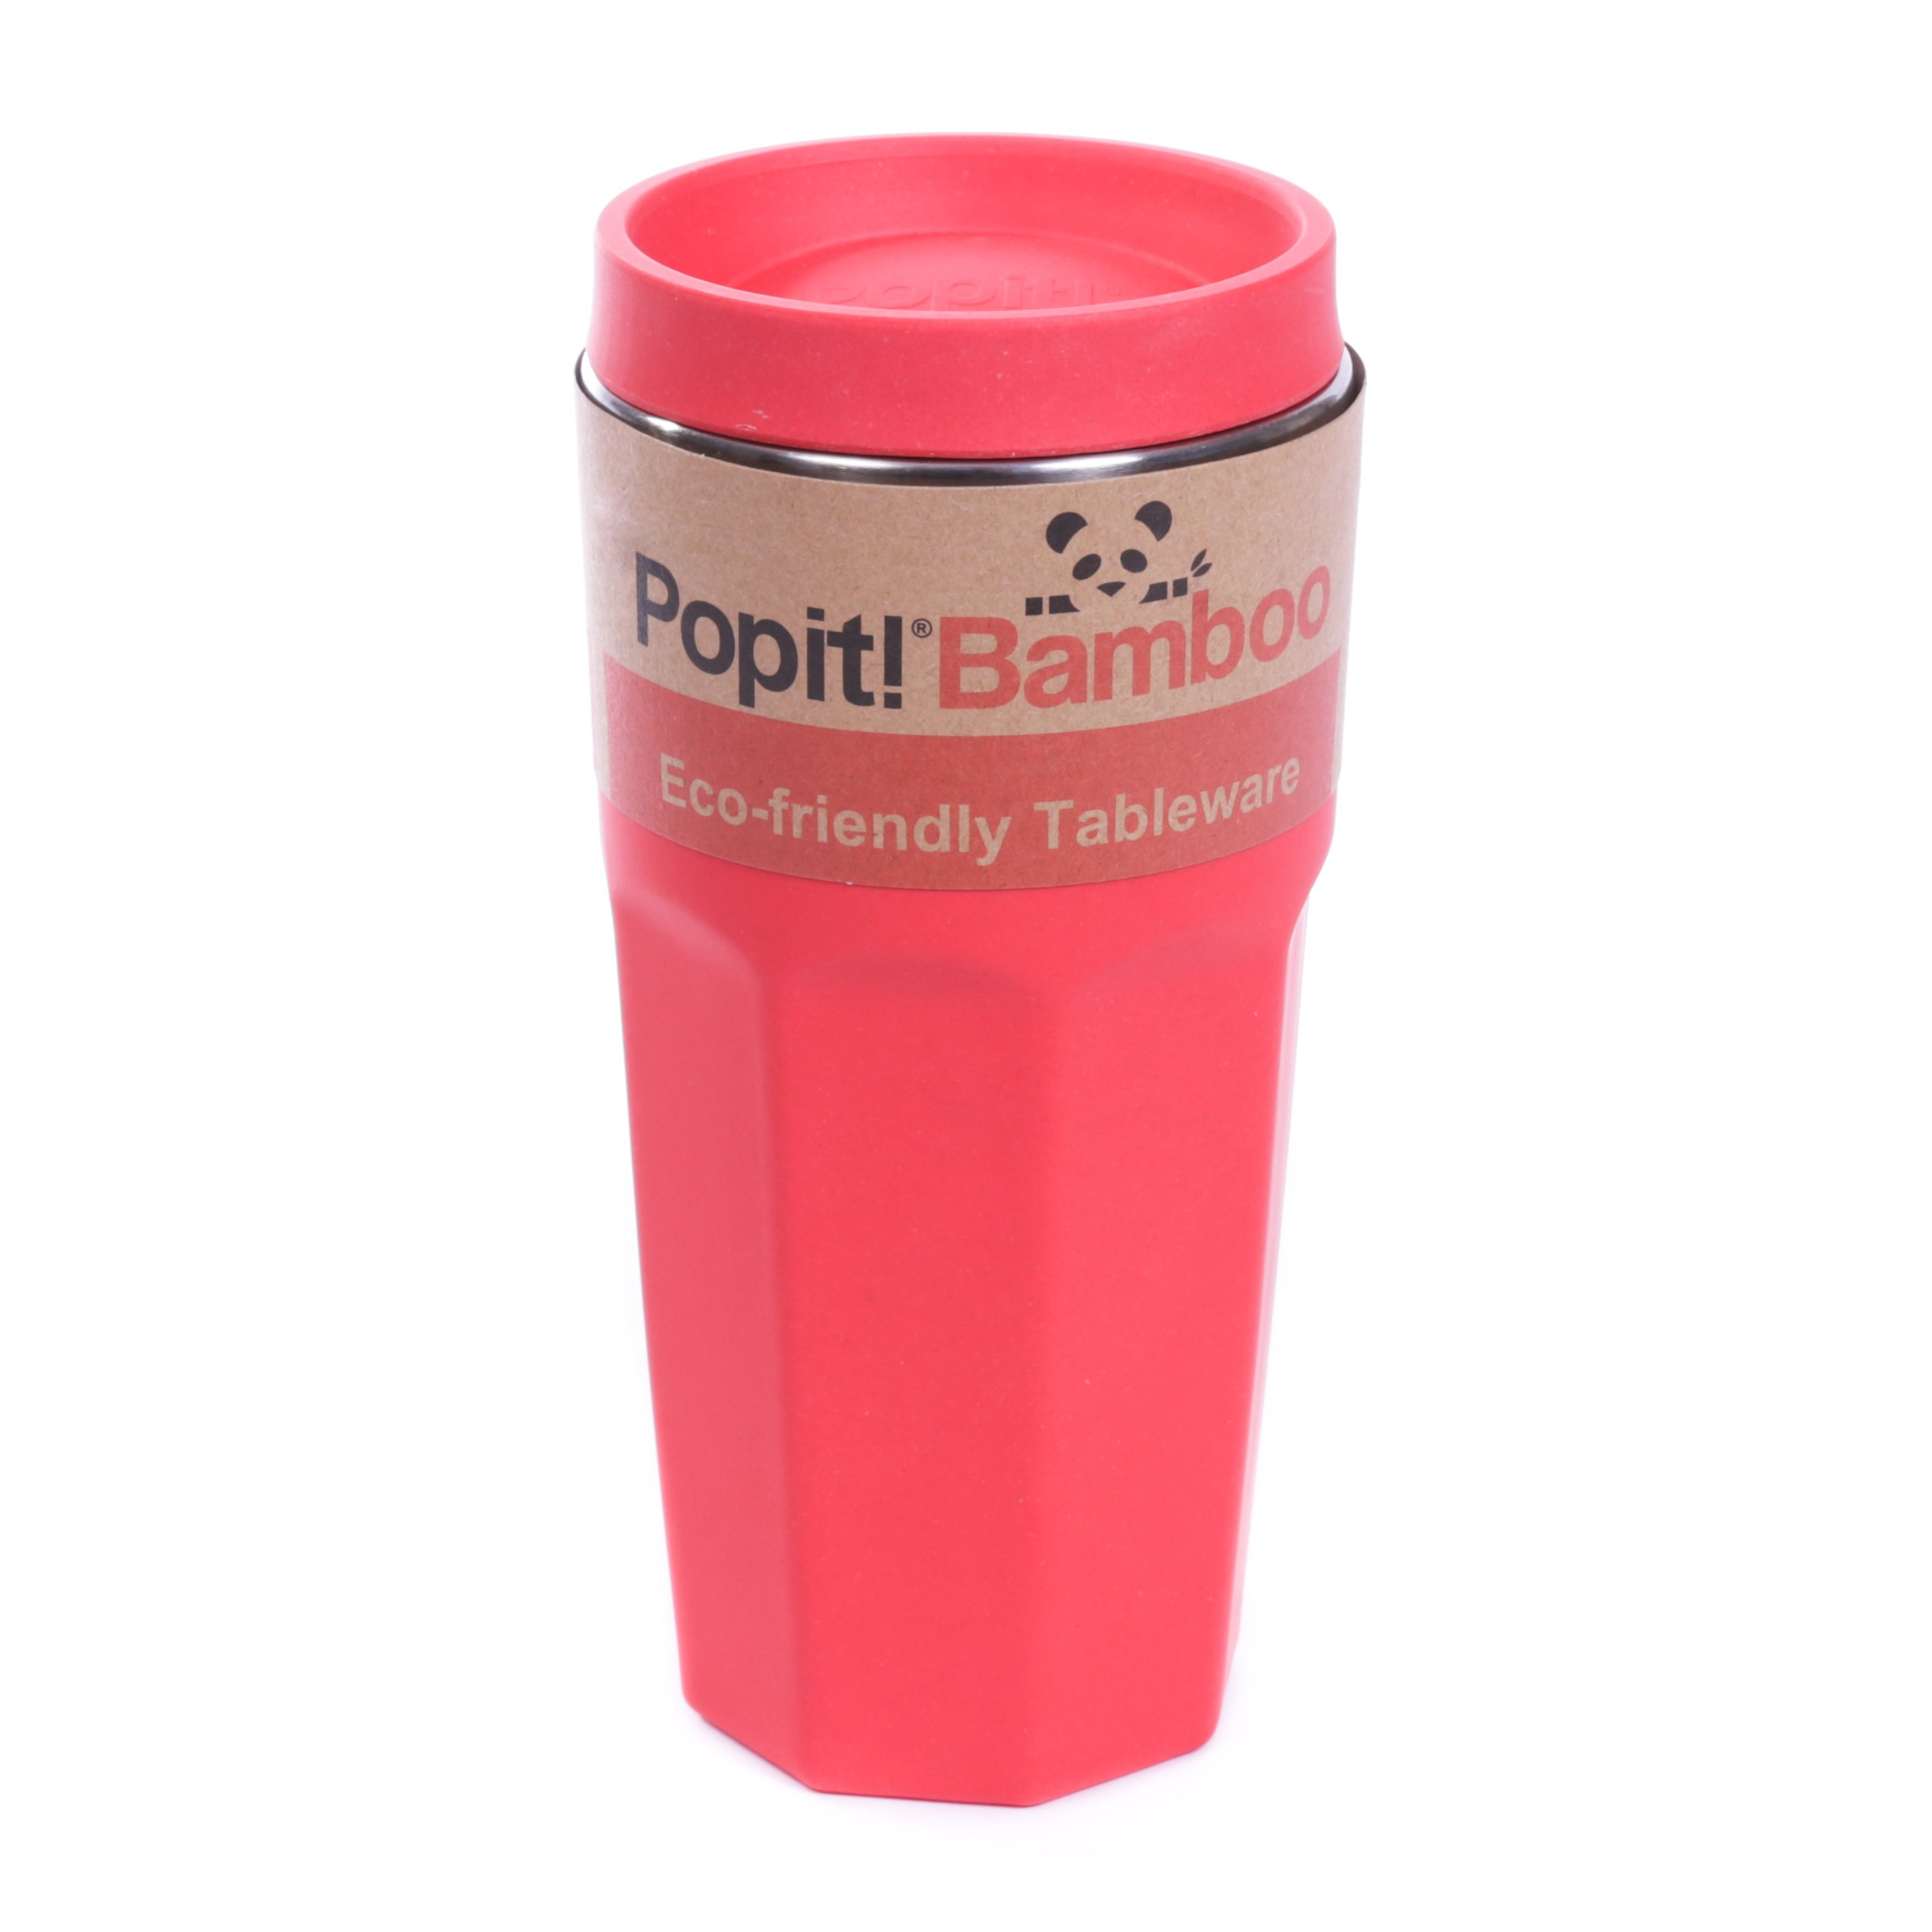 Coffee Travel Mug - Eco-Friendly, Fits Most Cup-holders - 15 Oz. / 450ml Travel Tumbler, Stainless Steel, Cool Colors, Made out of Bamboo Fiber - The Bamboo Travel Mug, by Popit (Candy Red)